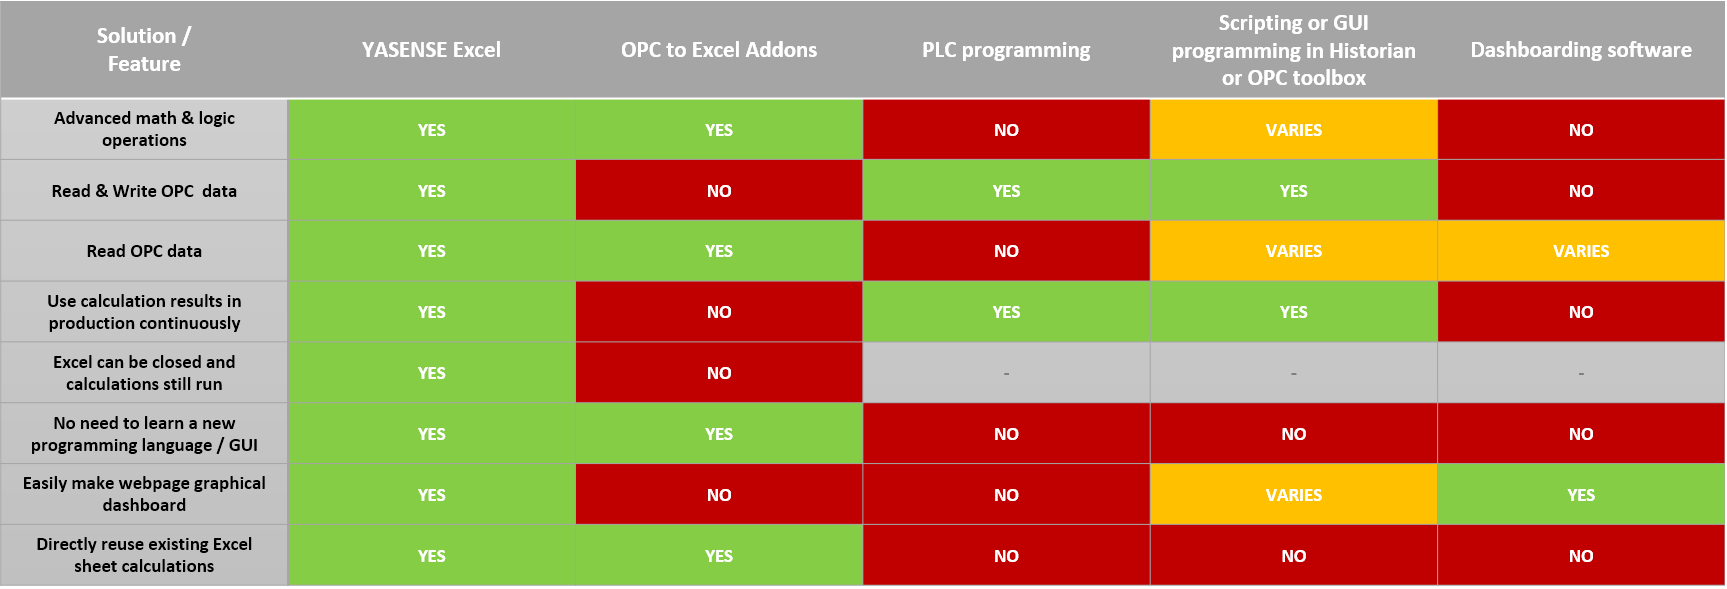 YASENSE Excel vs other OPC data operations solutions